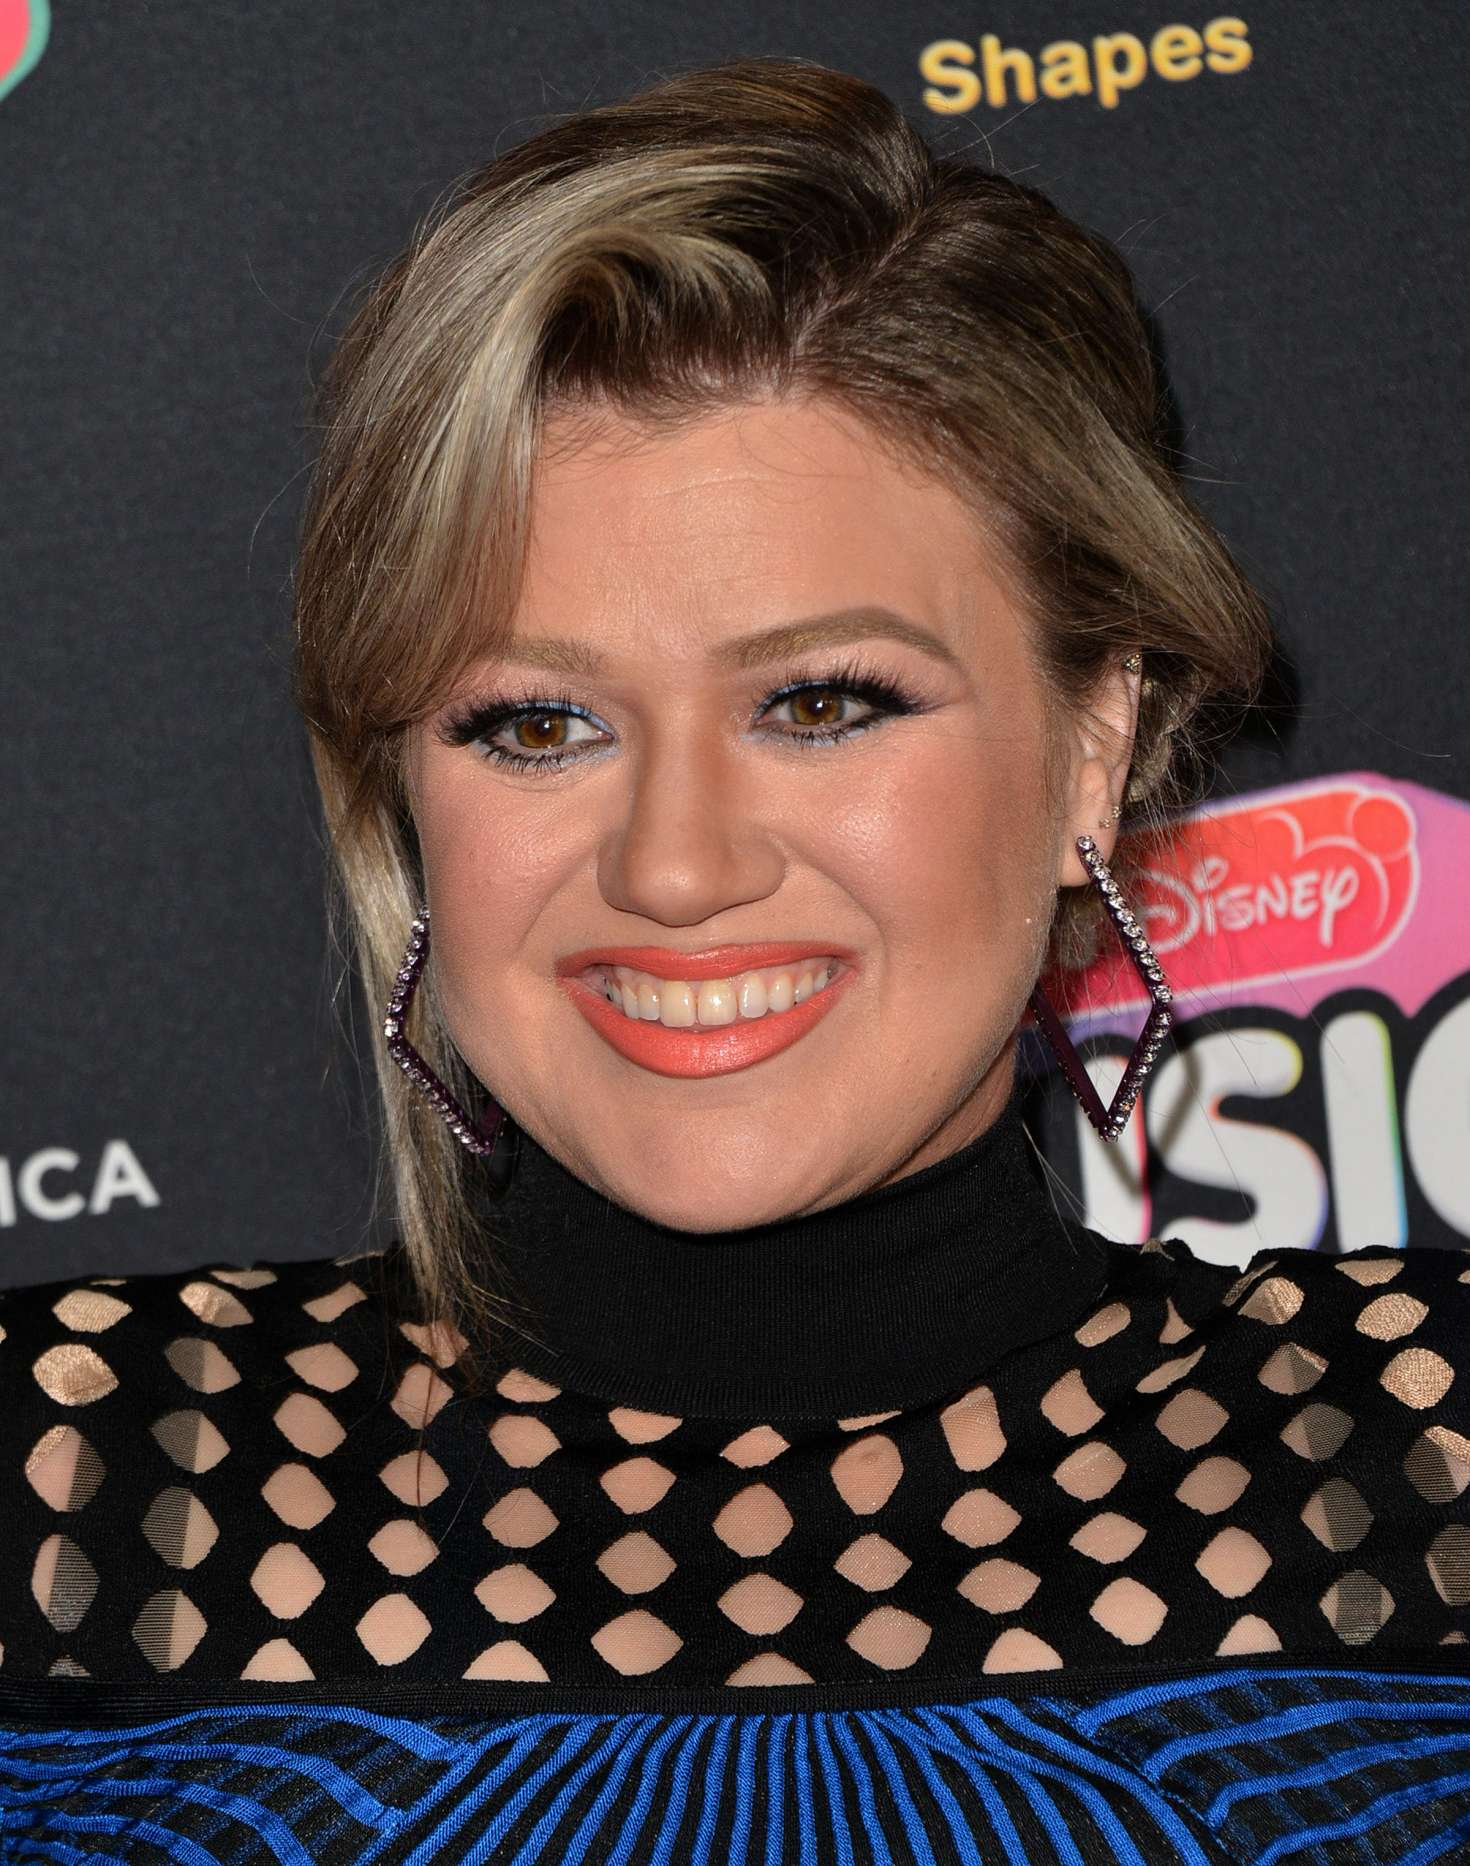 43. Kelly Clarkson